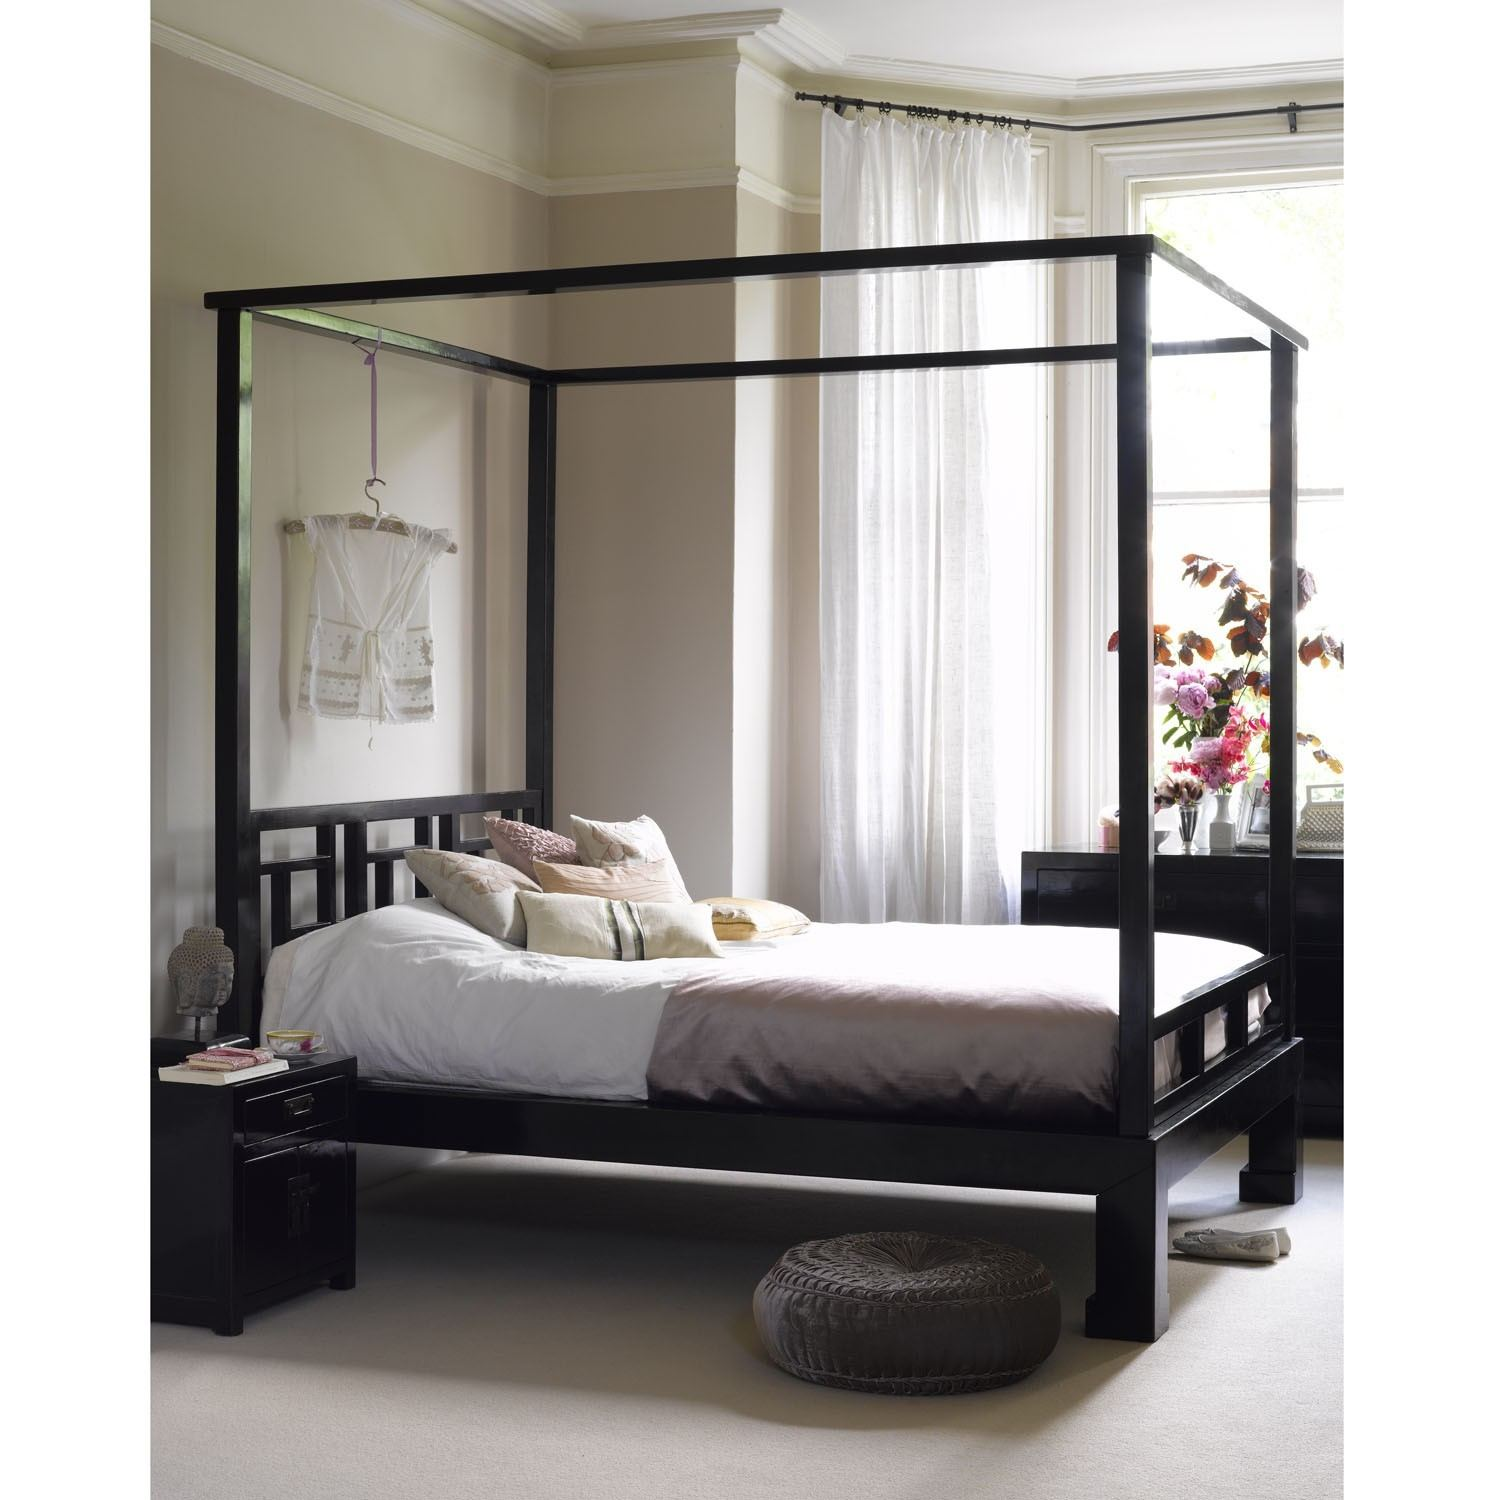 Full Size of Canopy Bedroom Ideas Pinterest Romantic Bed Decorating Drapes With Also Contemporary Inspiring Dr